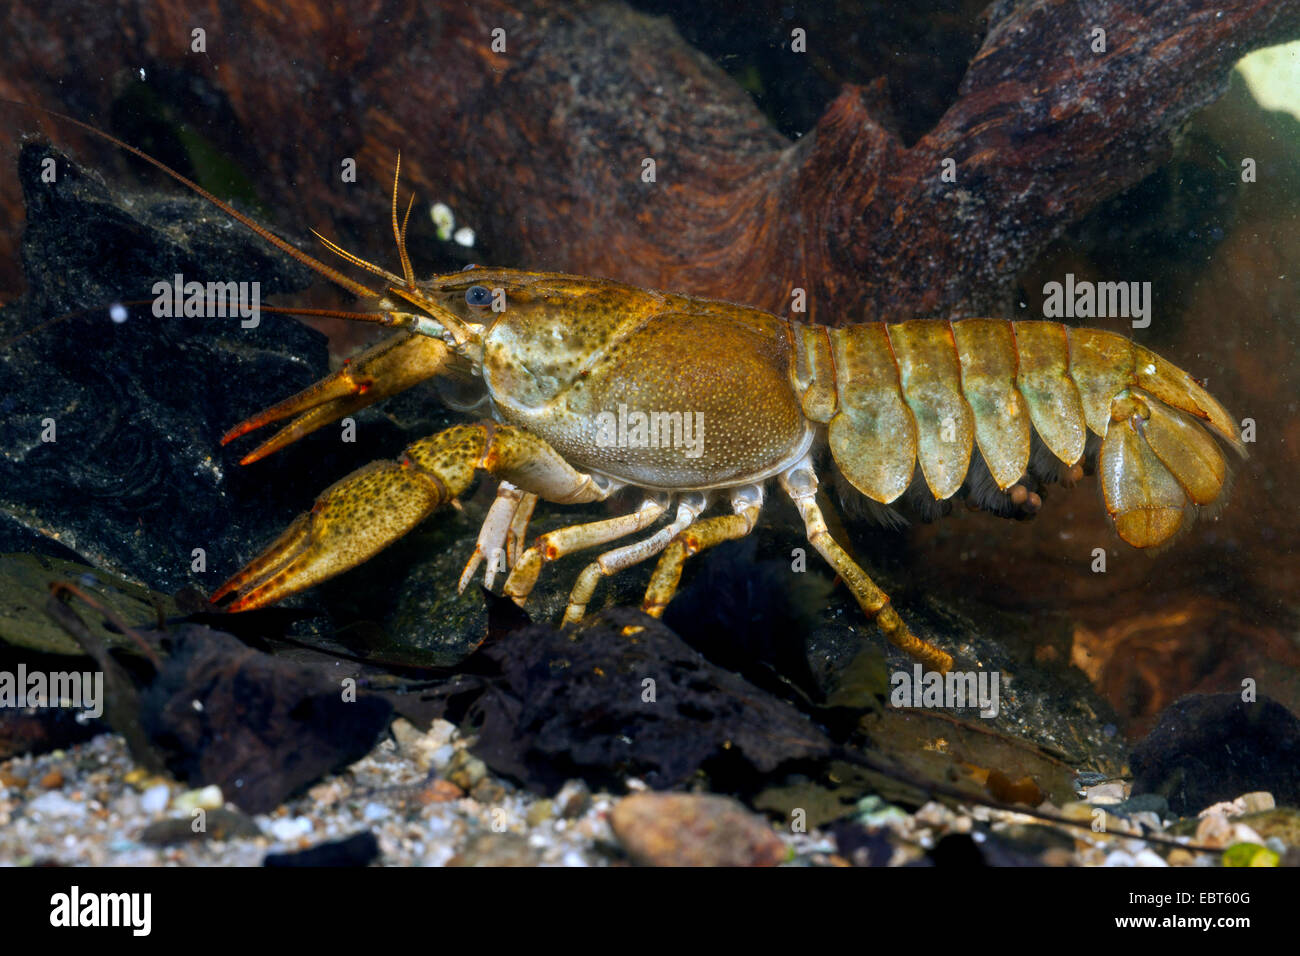 long-clawed crayfish (Astacus leptodactylus), female, abdomen with eggs Stock Photo